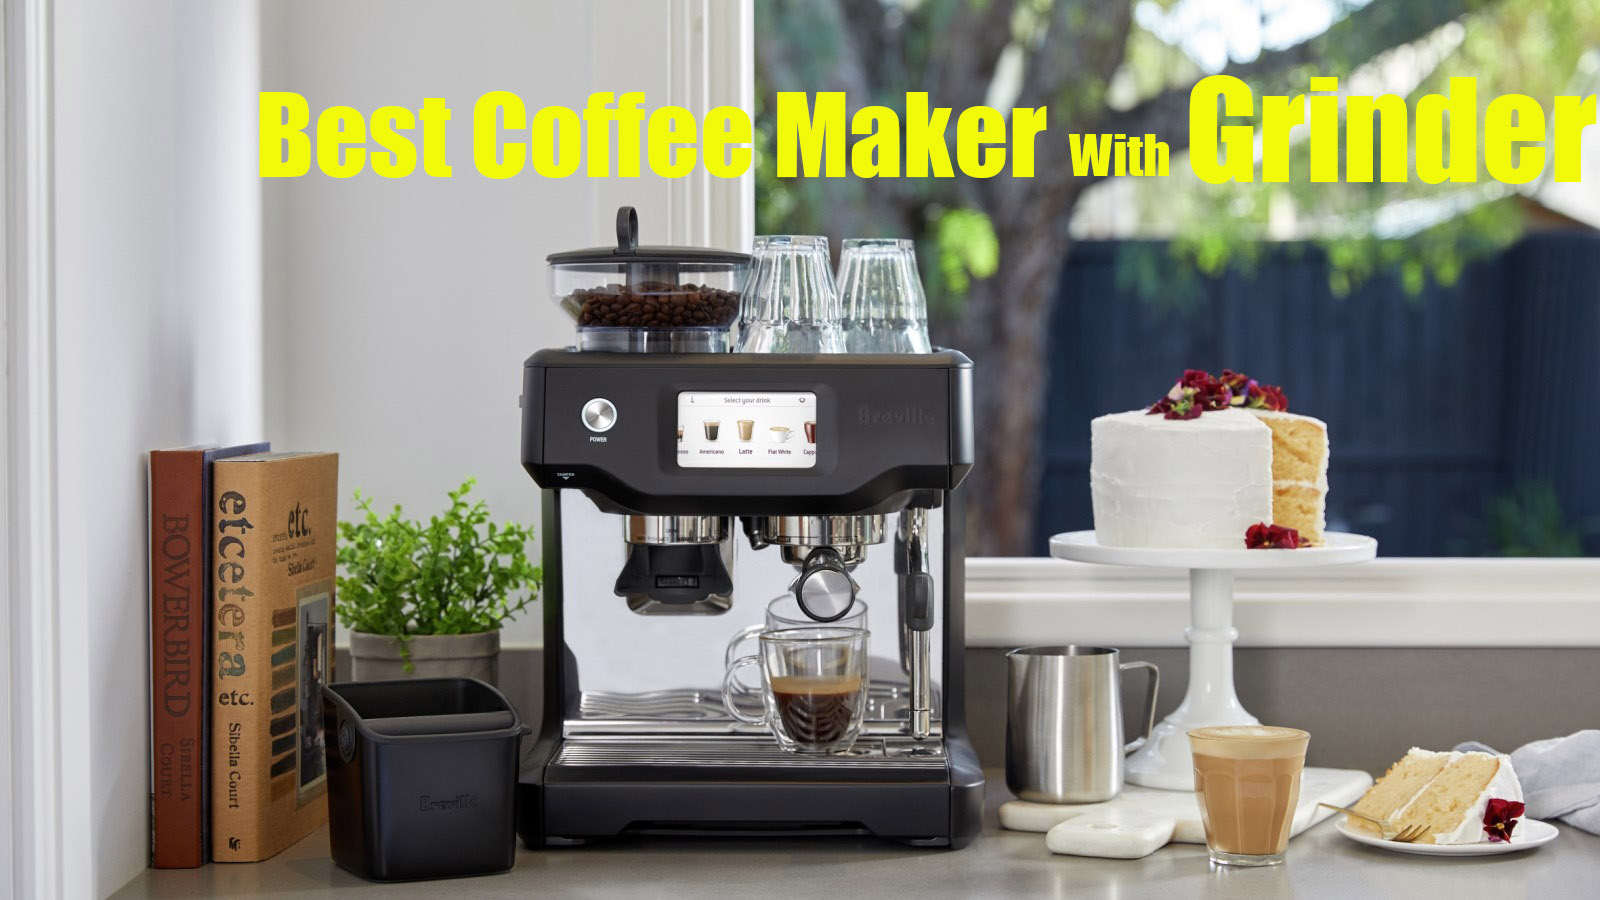 Best Coffee Maker With Grinder 2020 - Reviews And Buying ...